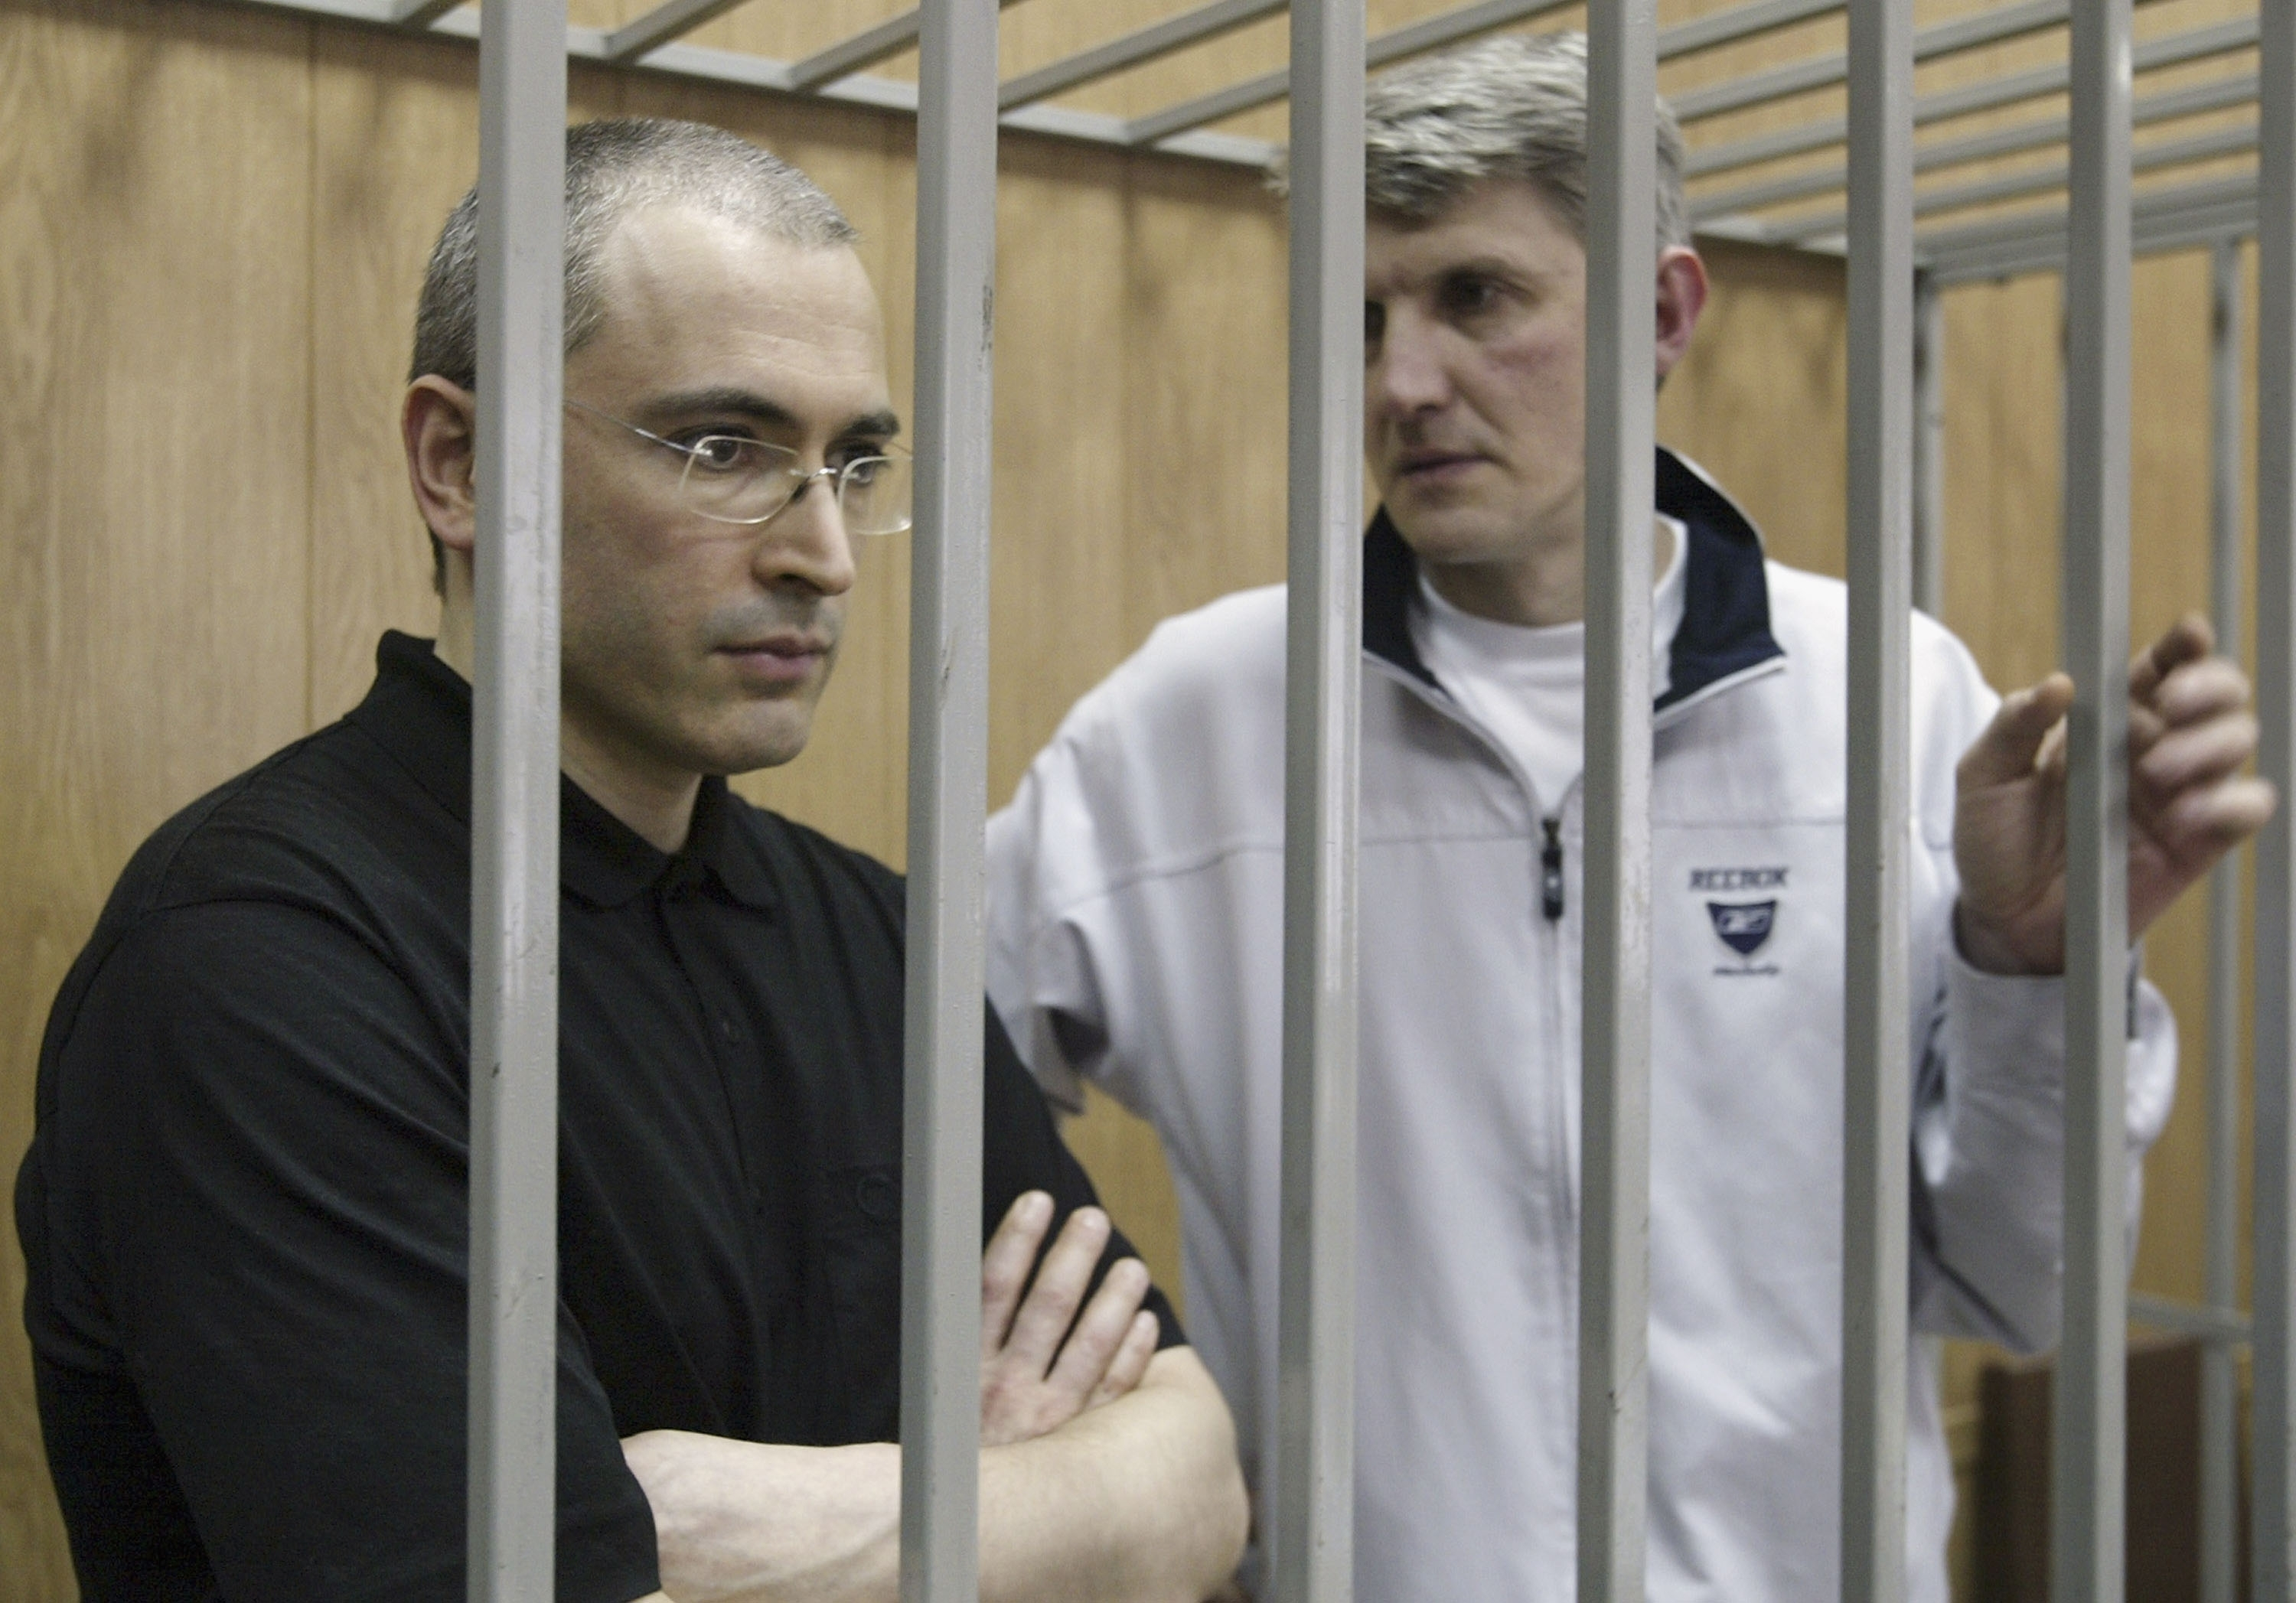 Russian oil magnate Mikhail Khodorkovsky (L) listens to close associate and fellow defendant Platon Lebedev during their trial in Moscow, July 12, 2004 in Moscow.